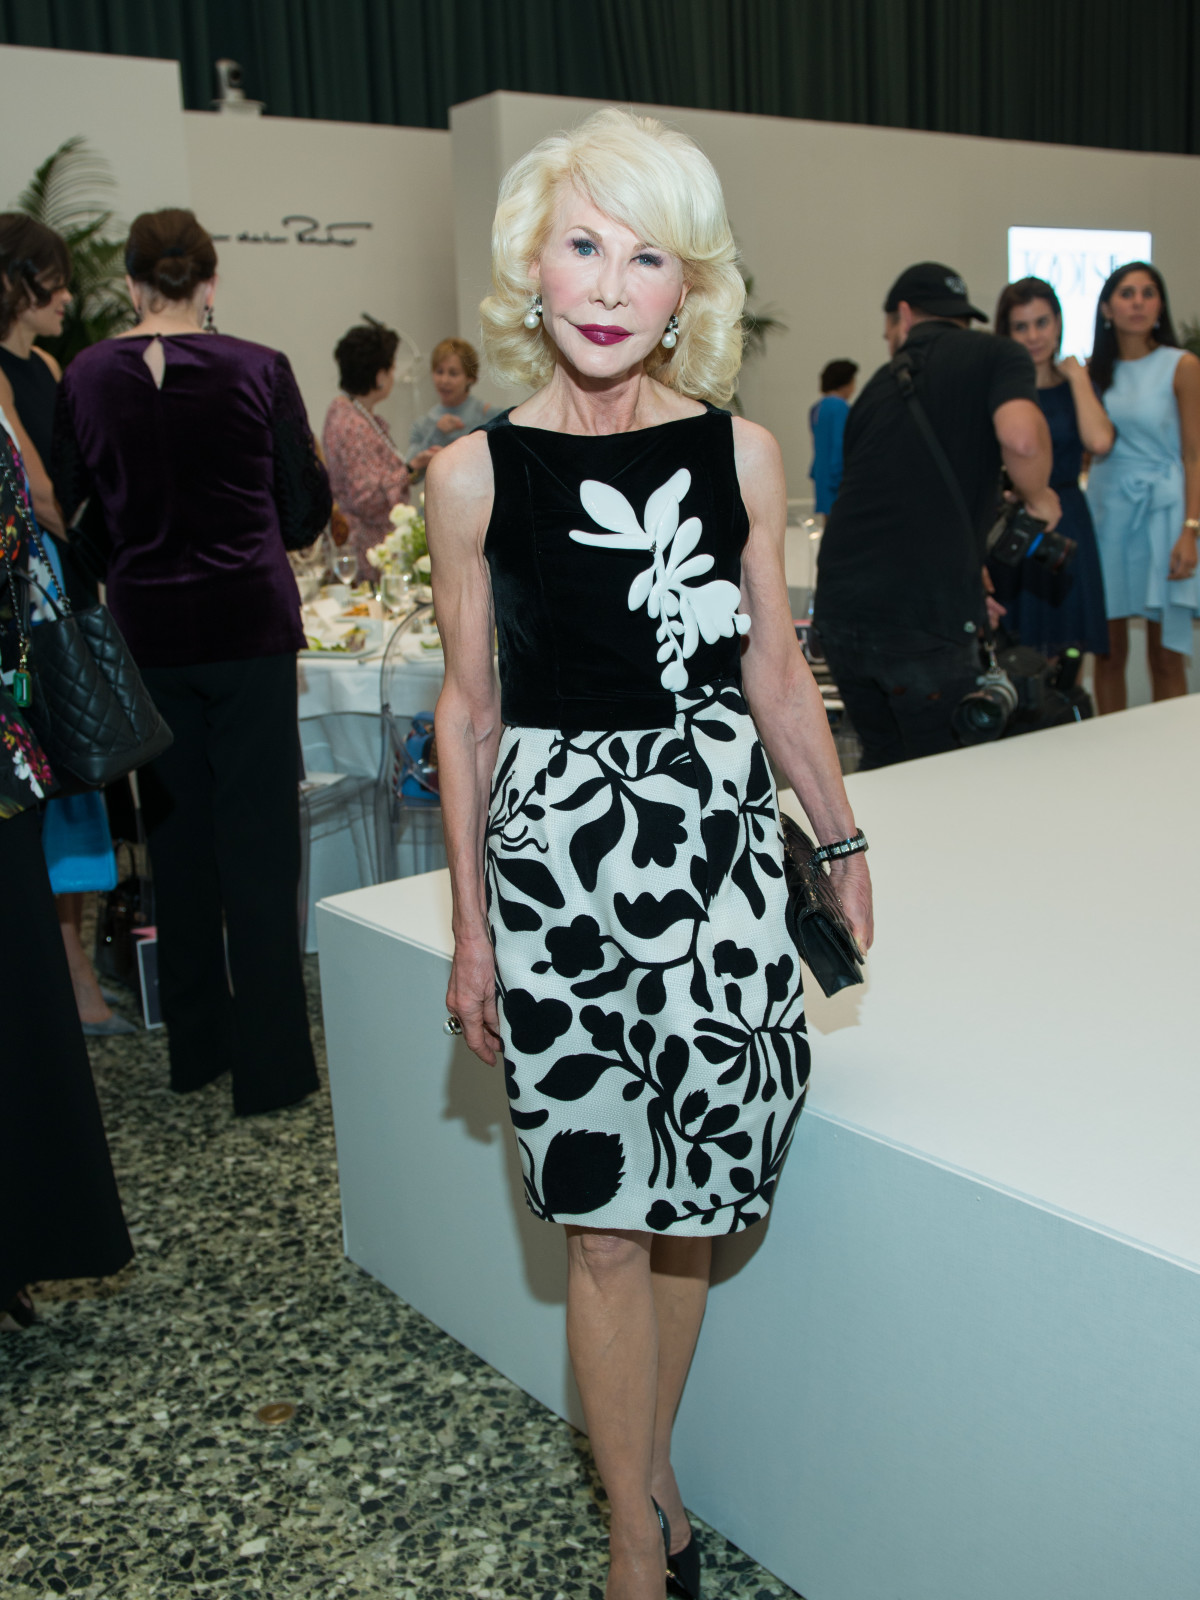 Diane Lokey Farb at Oscar de la Renta fashion show at MFAH